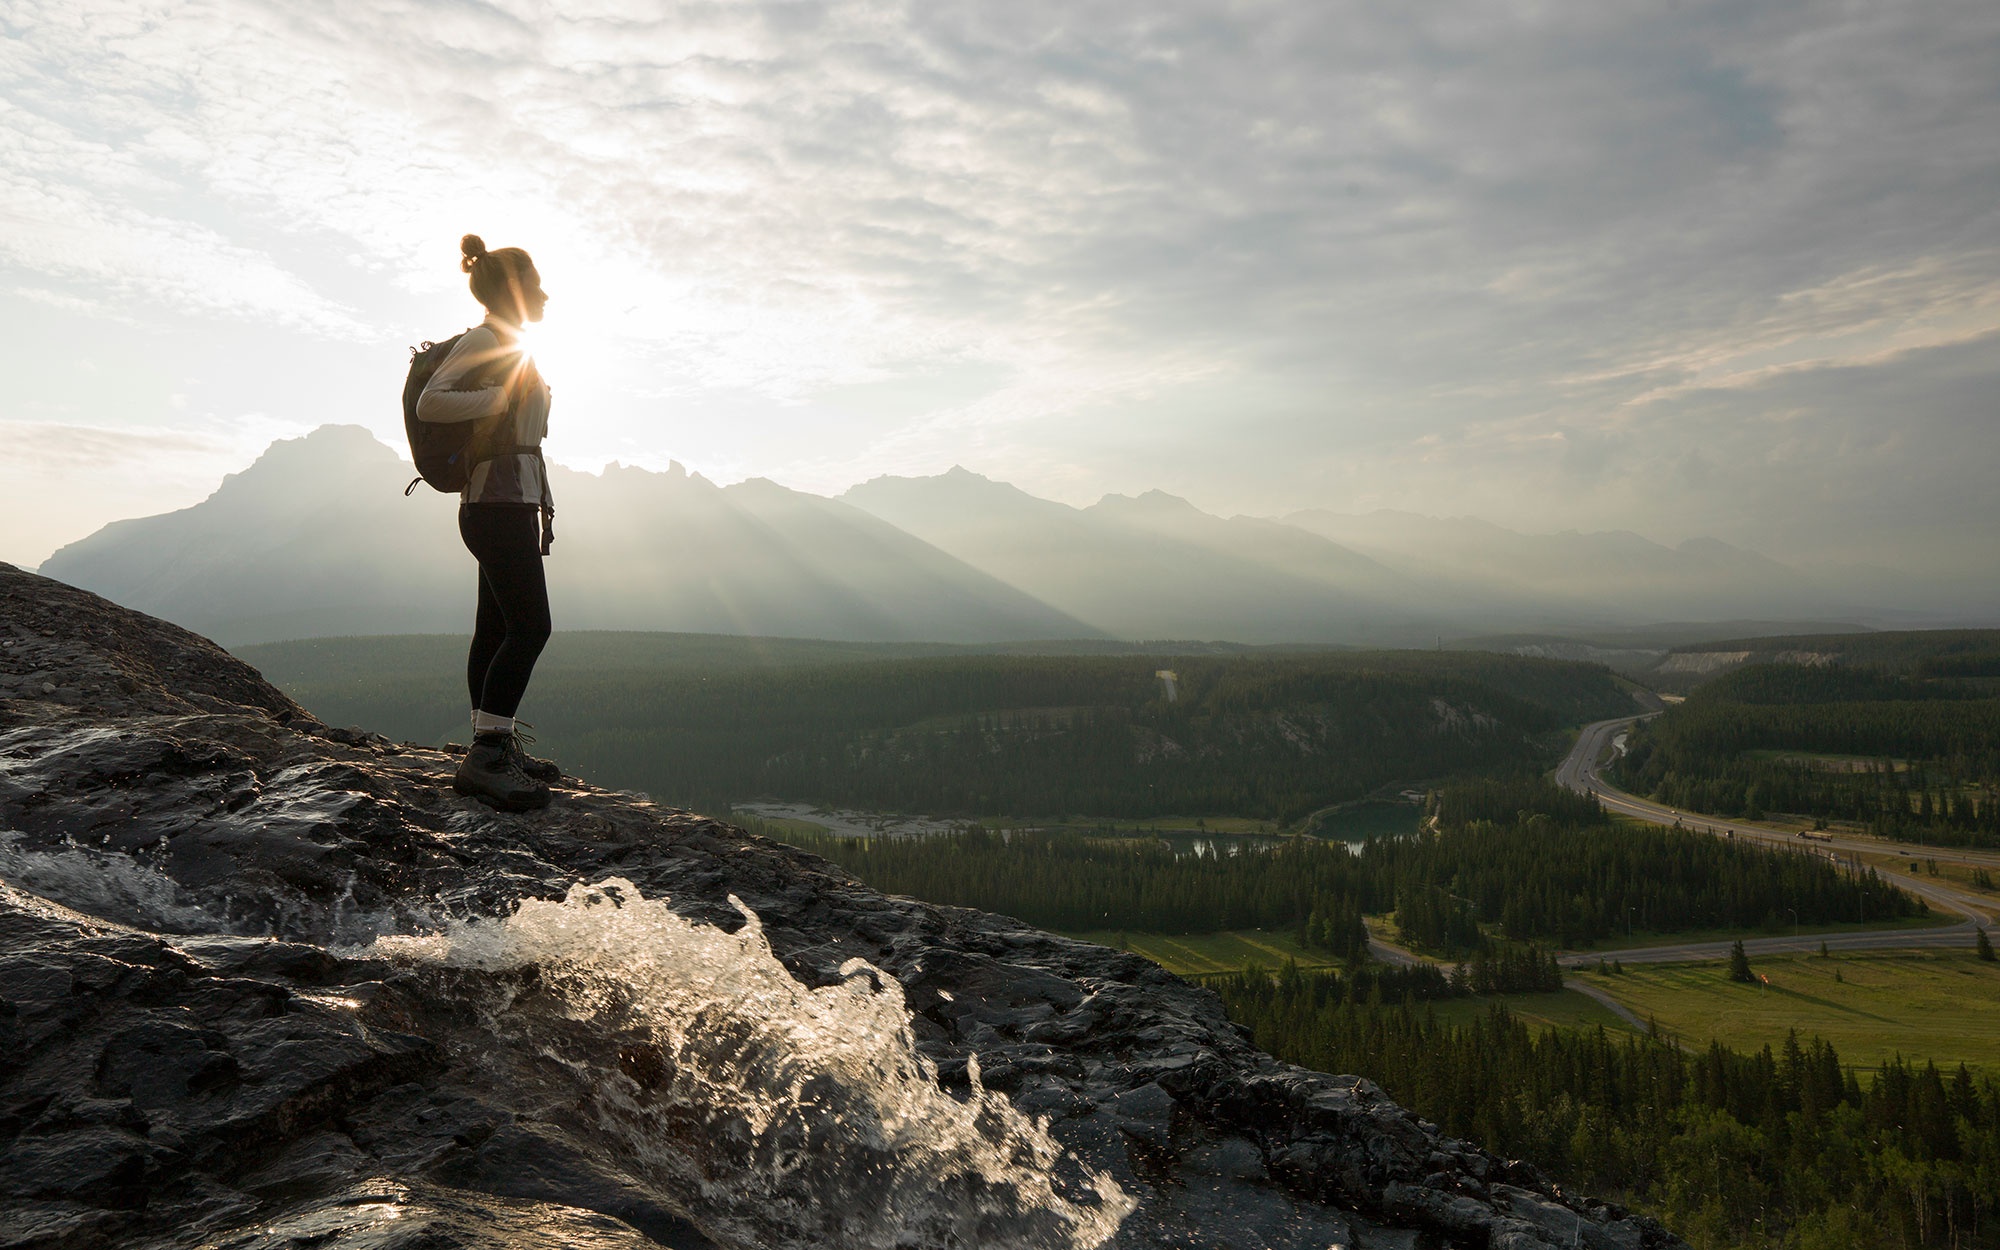 Young woman looks across mtns and valley, sunrise